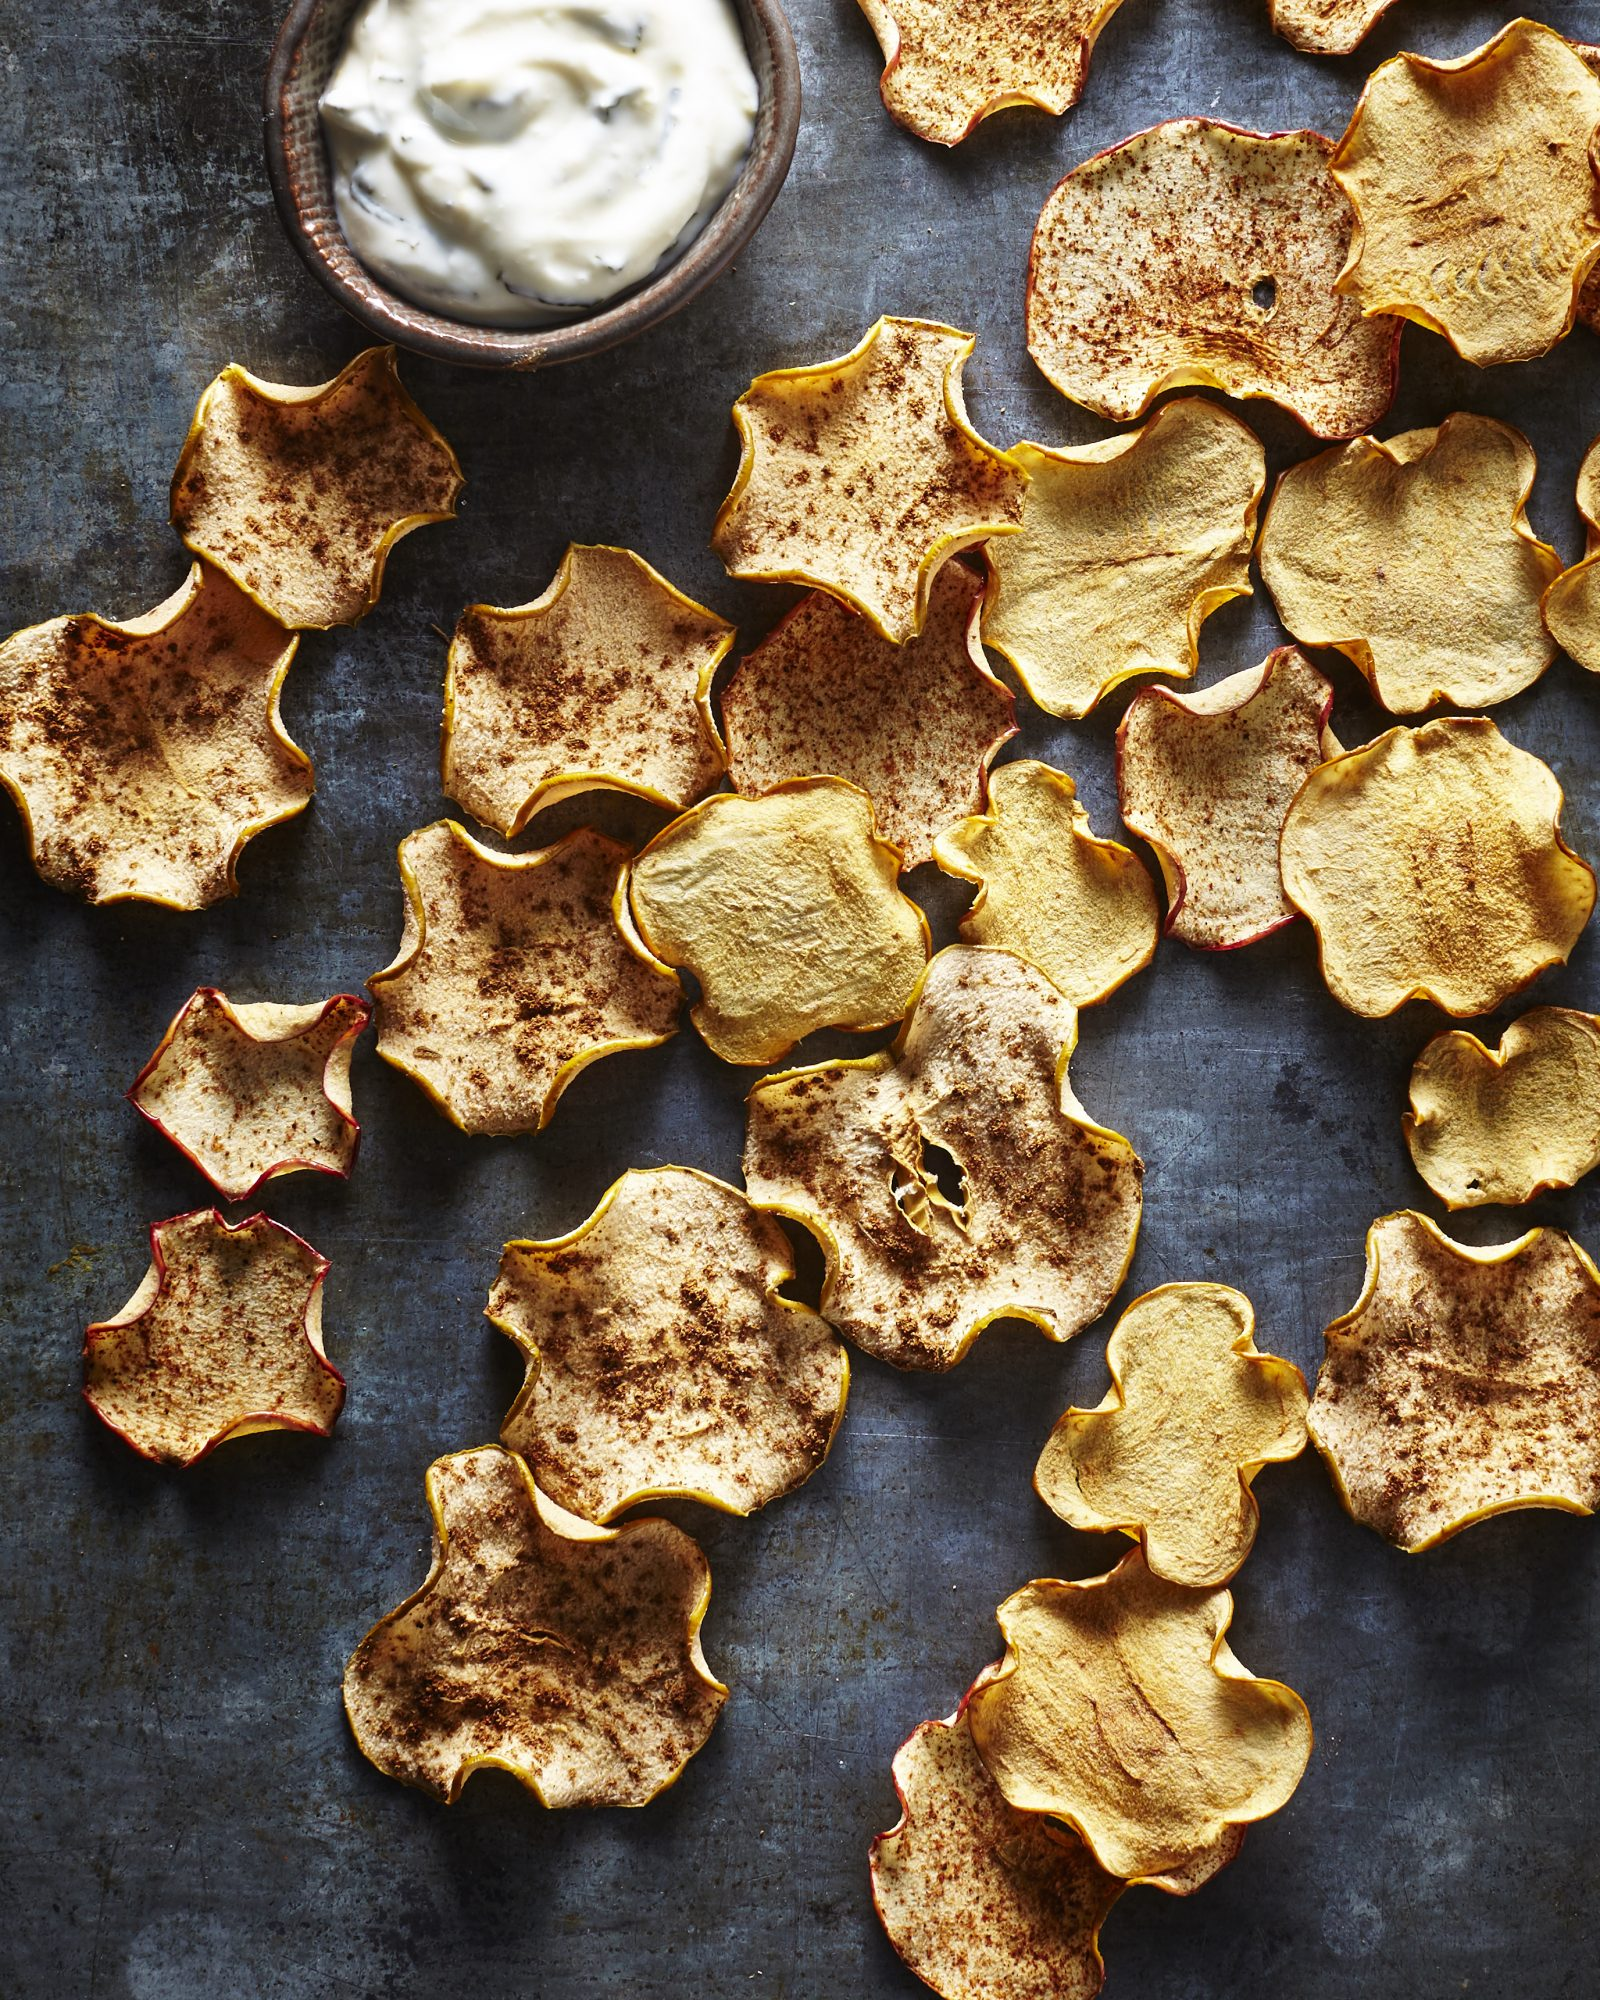 6 Pro Tips for Making the Very Best Homemade Apple Chips